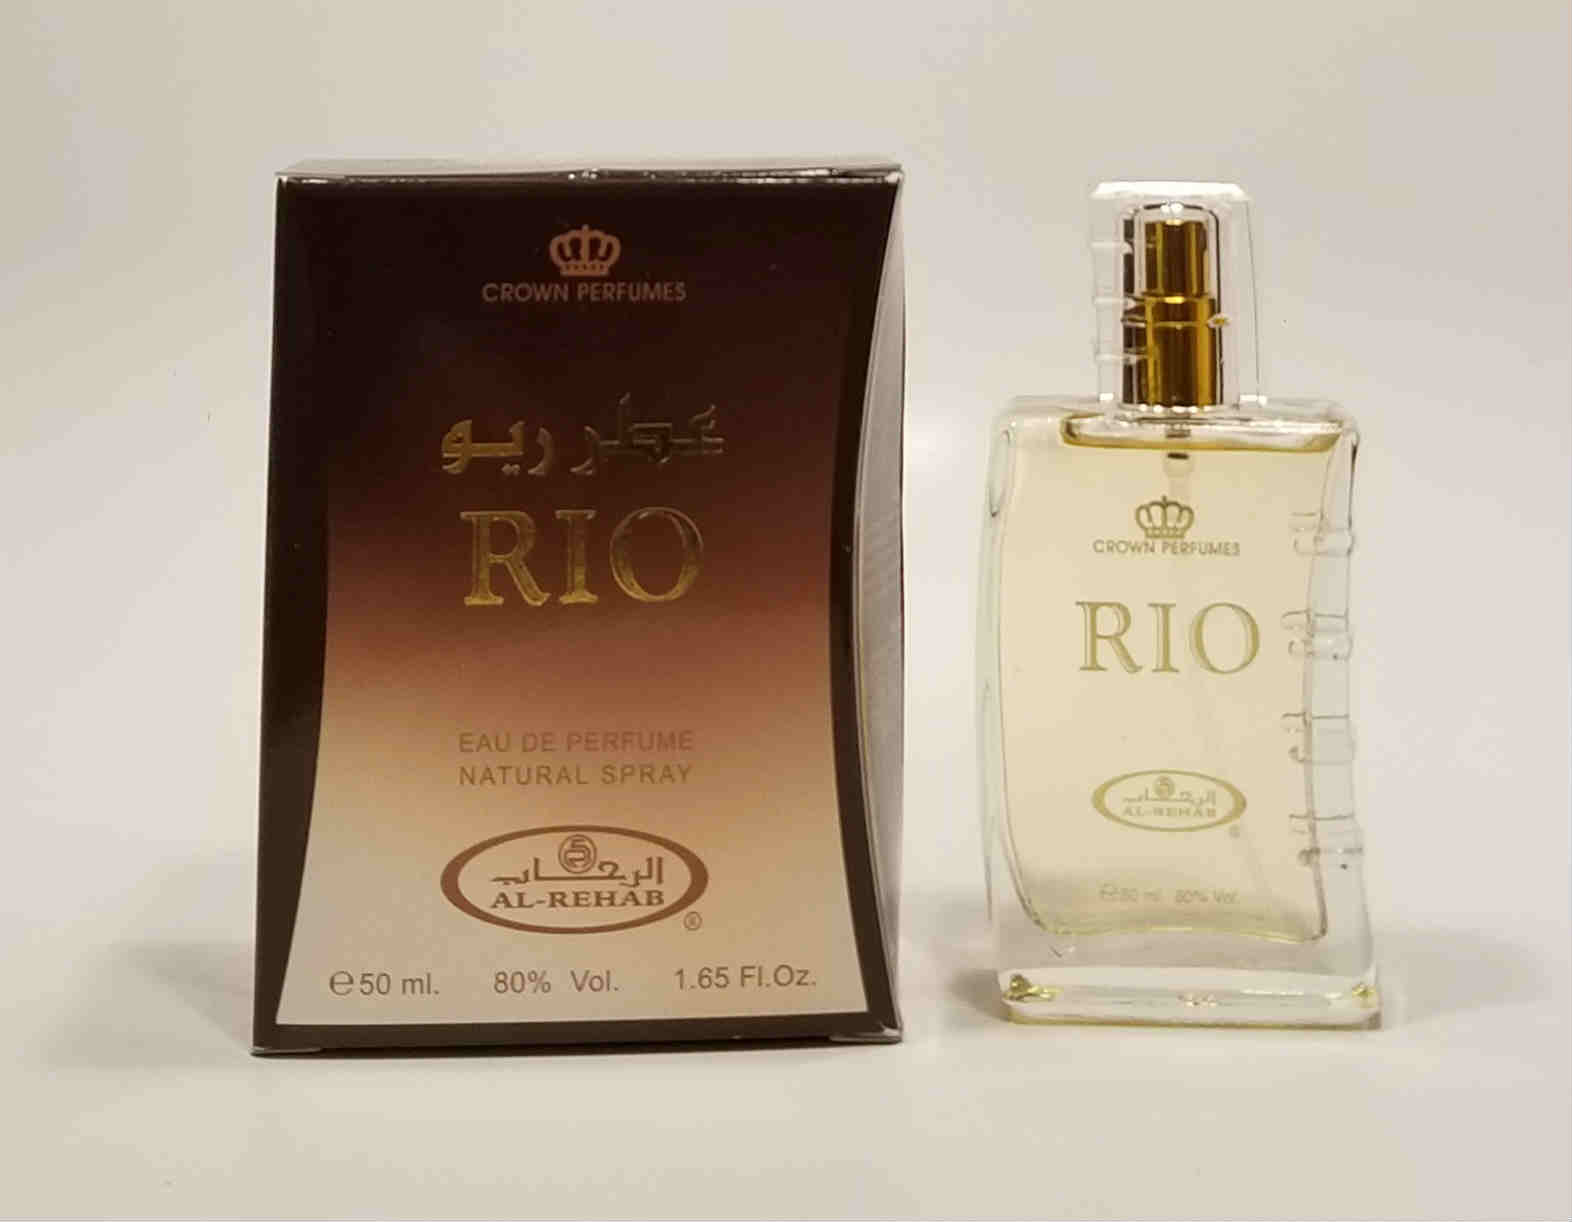 RIO - Al-Rehab Eau De Perfume Natural Spray (50 ml/1.65 fl. oz)